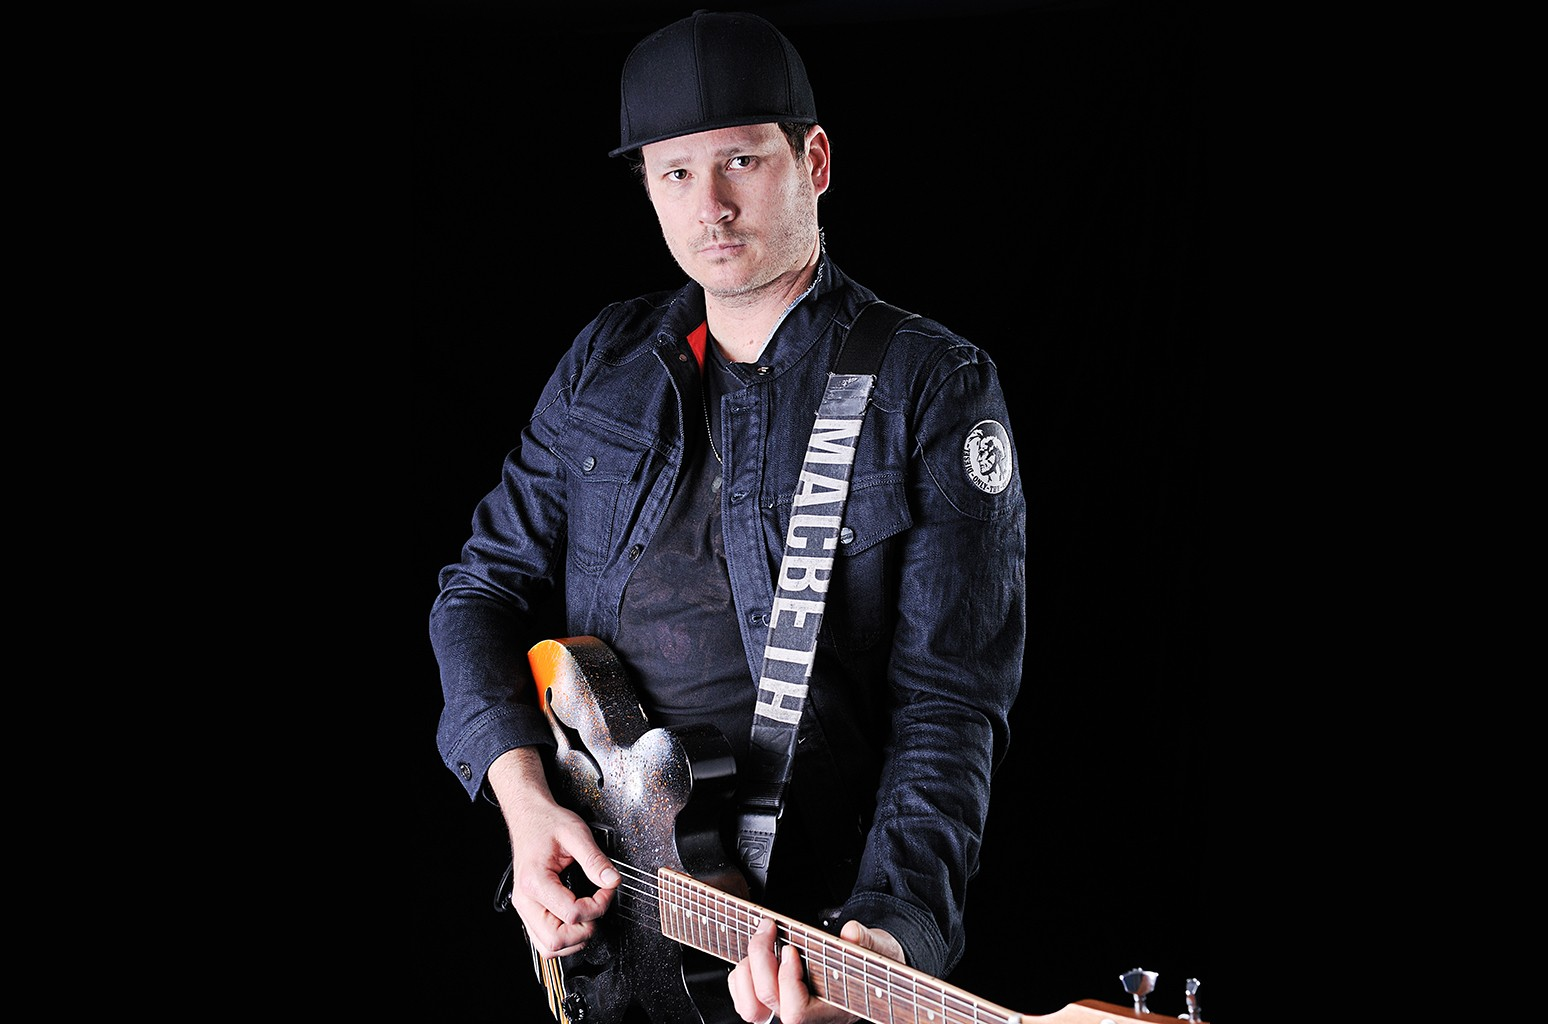 Tom DeLonge photographed in 2012